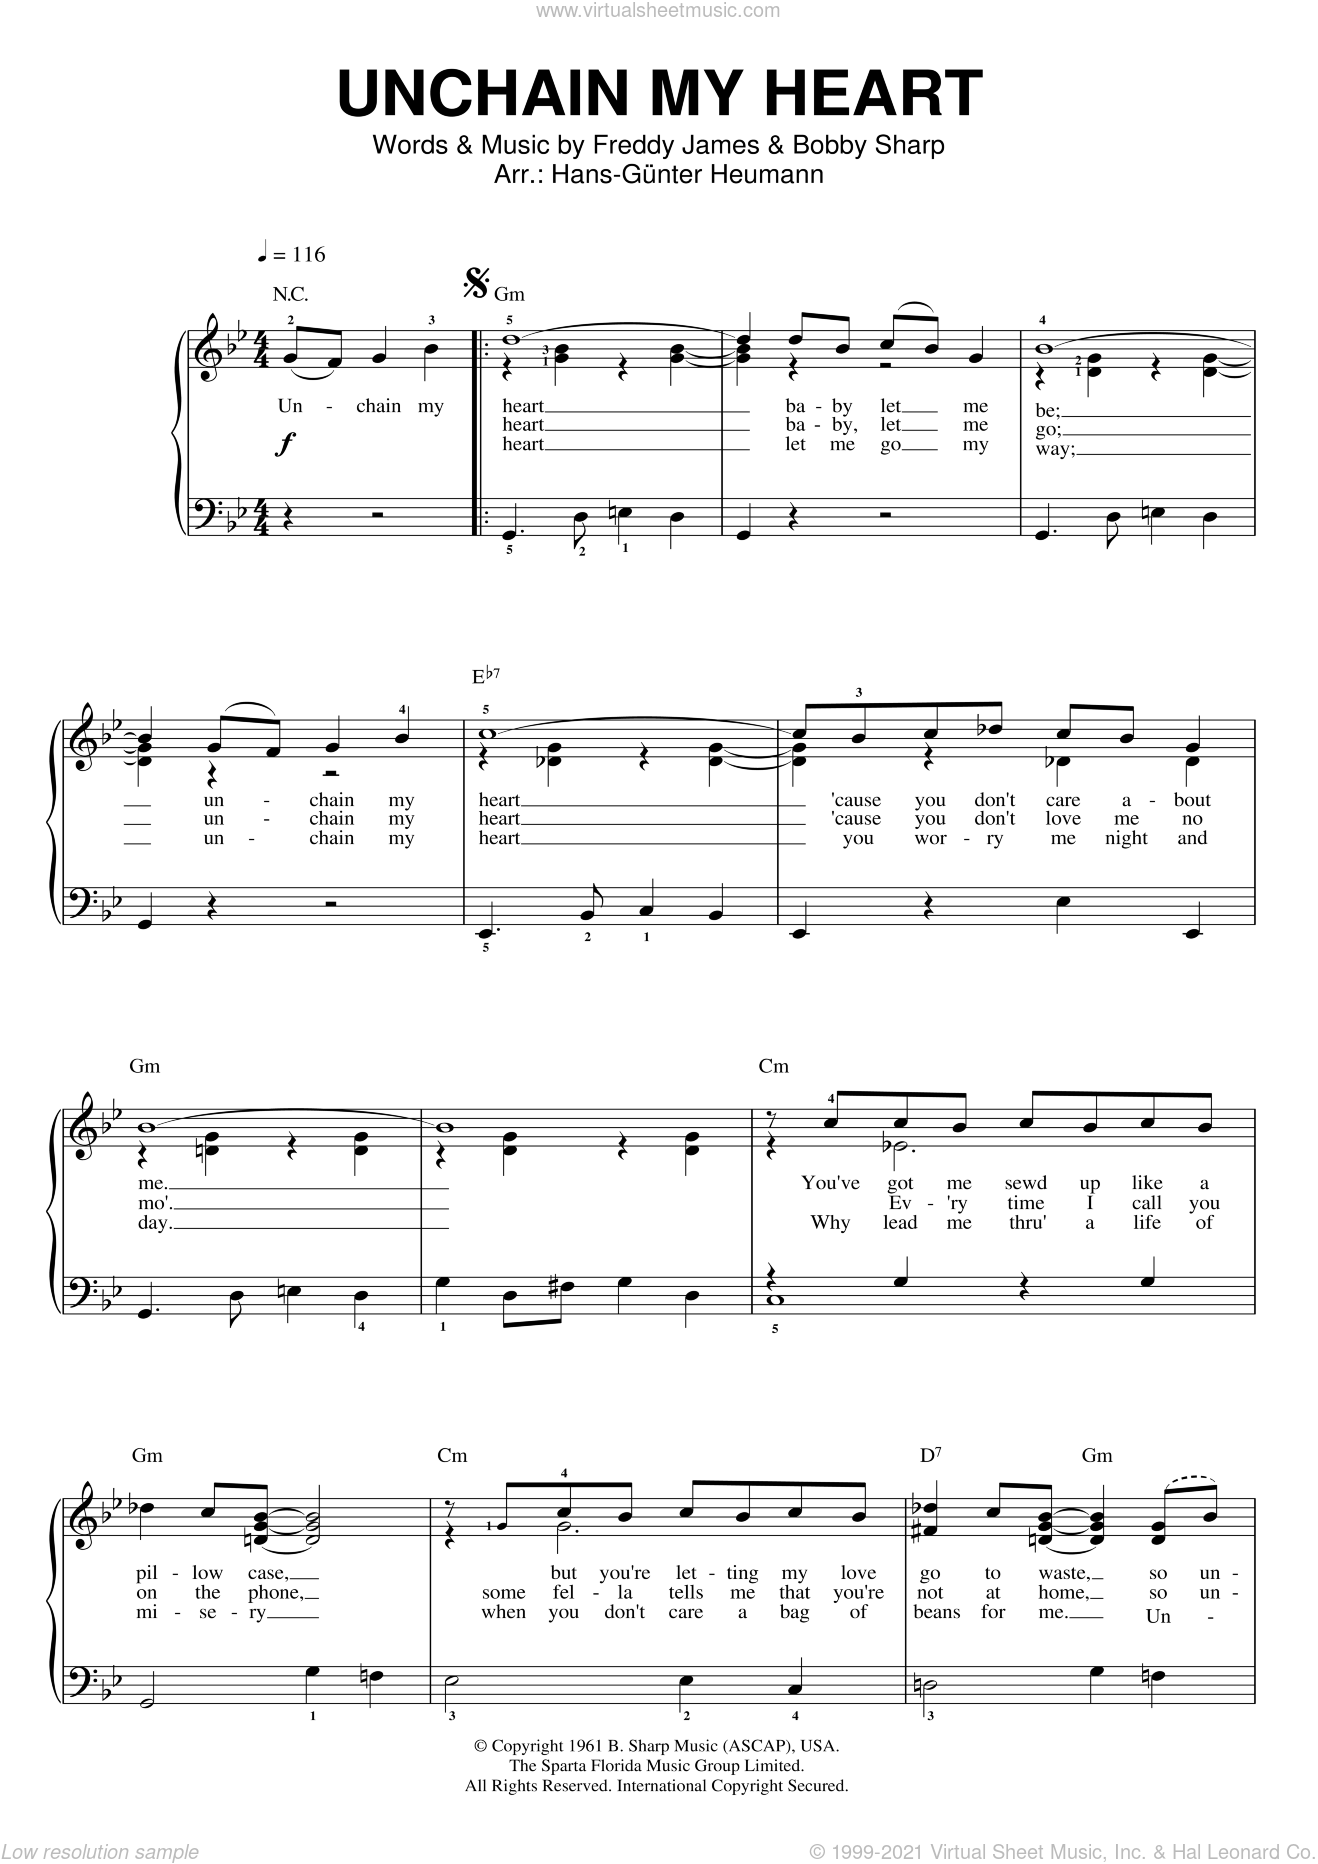 Unchain My Heart sheet music for voice and piano by Joe Cocker, Bobby Sharp and Teddy Powell, intermediate skill level